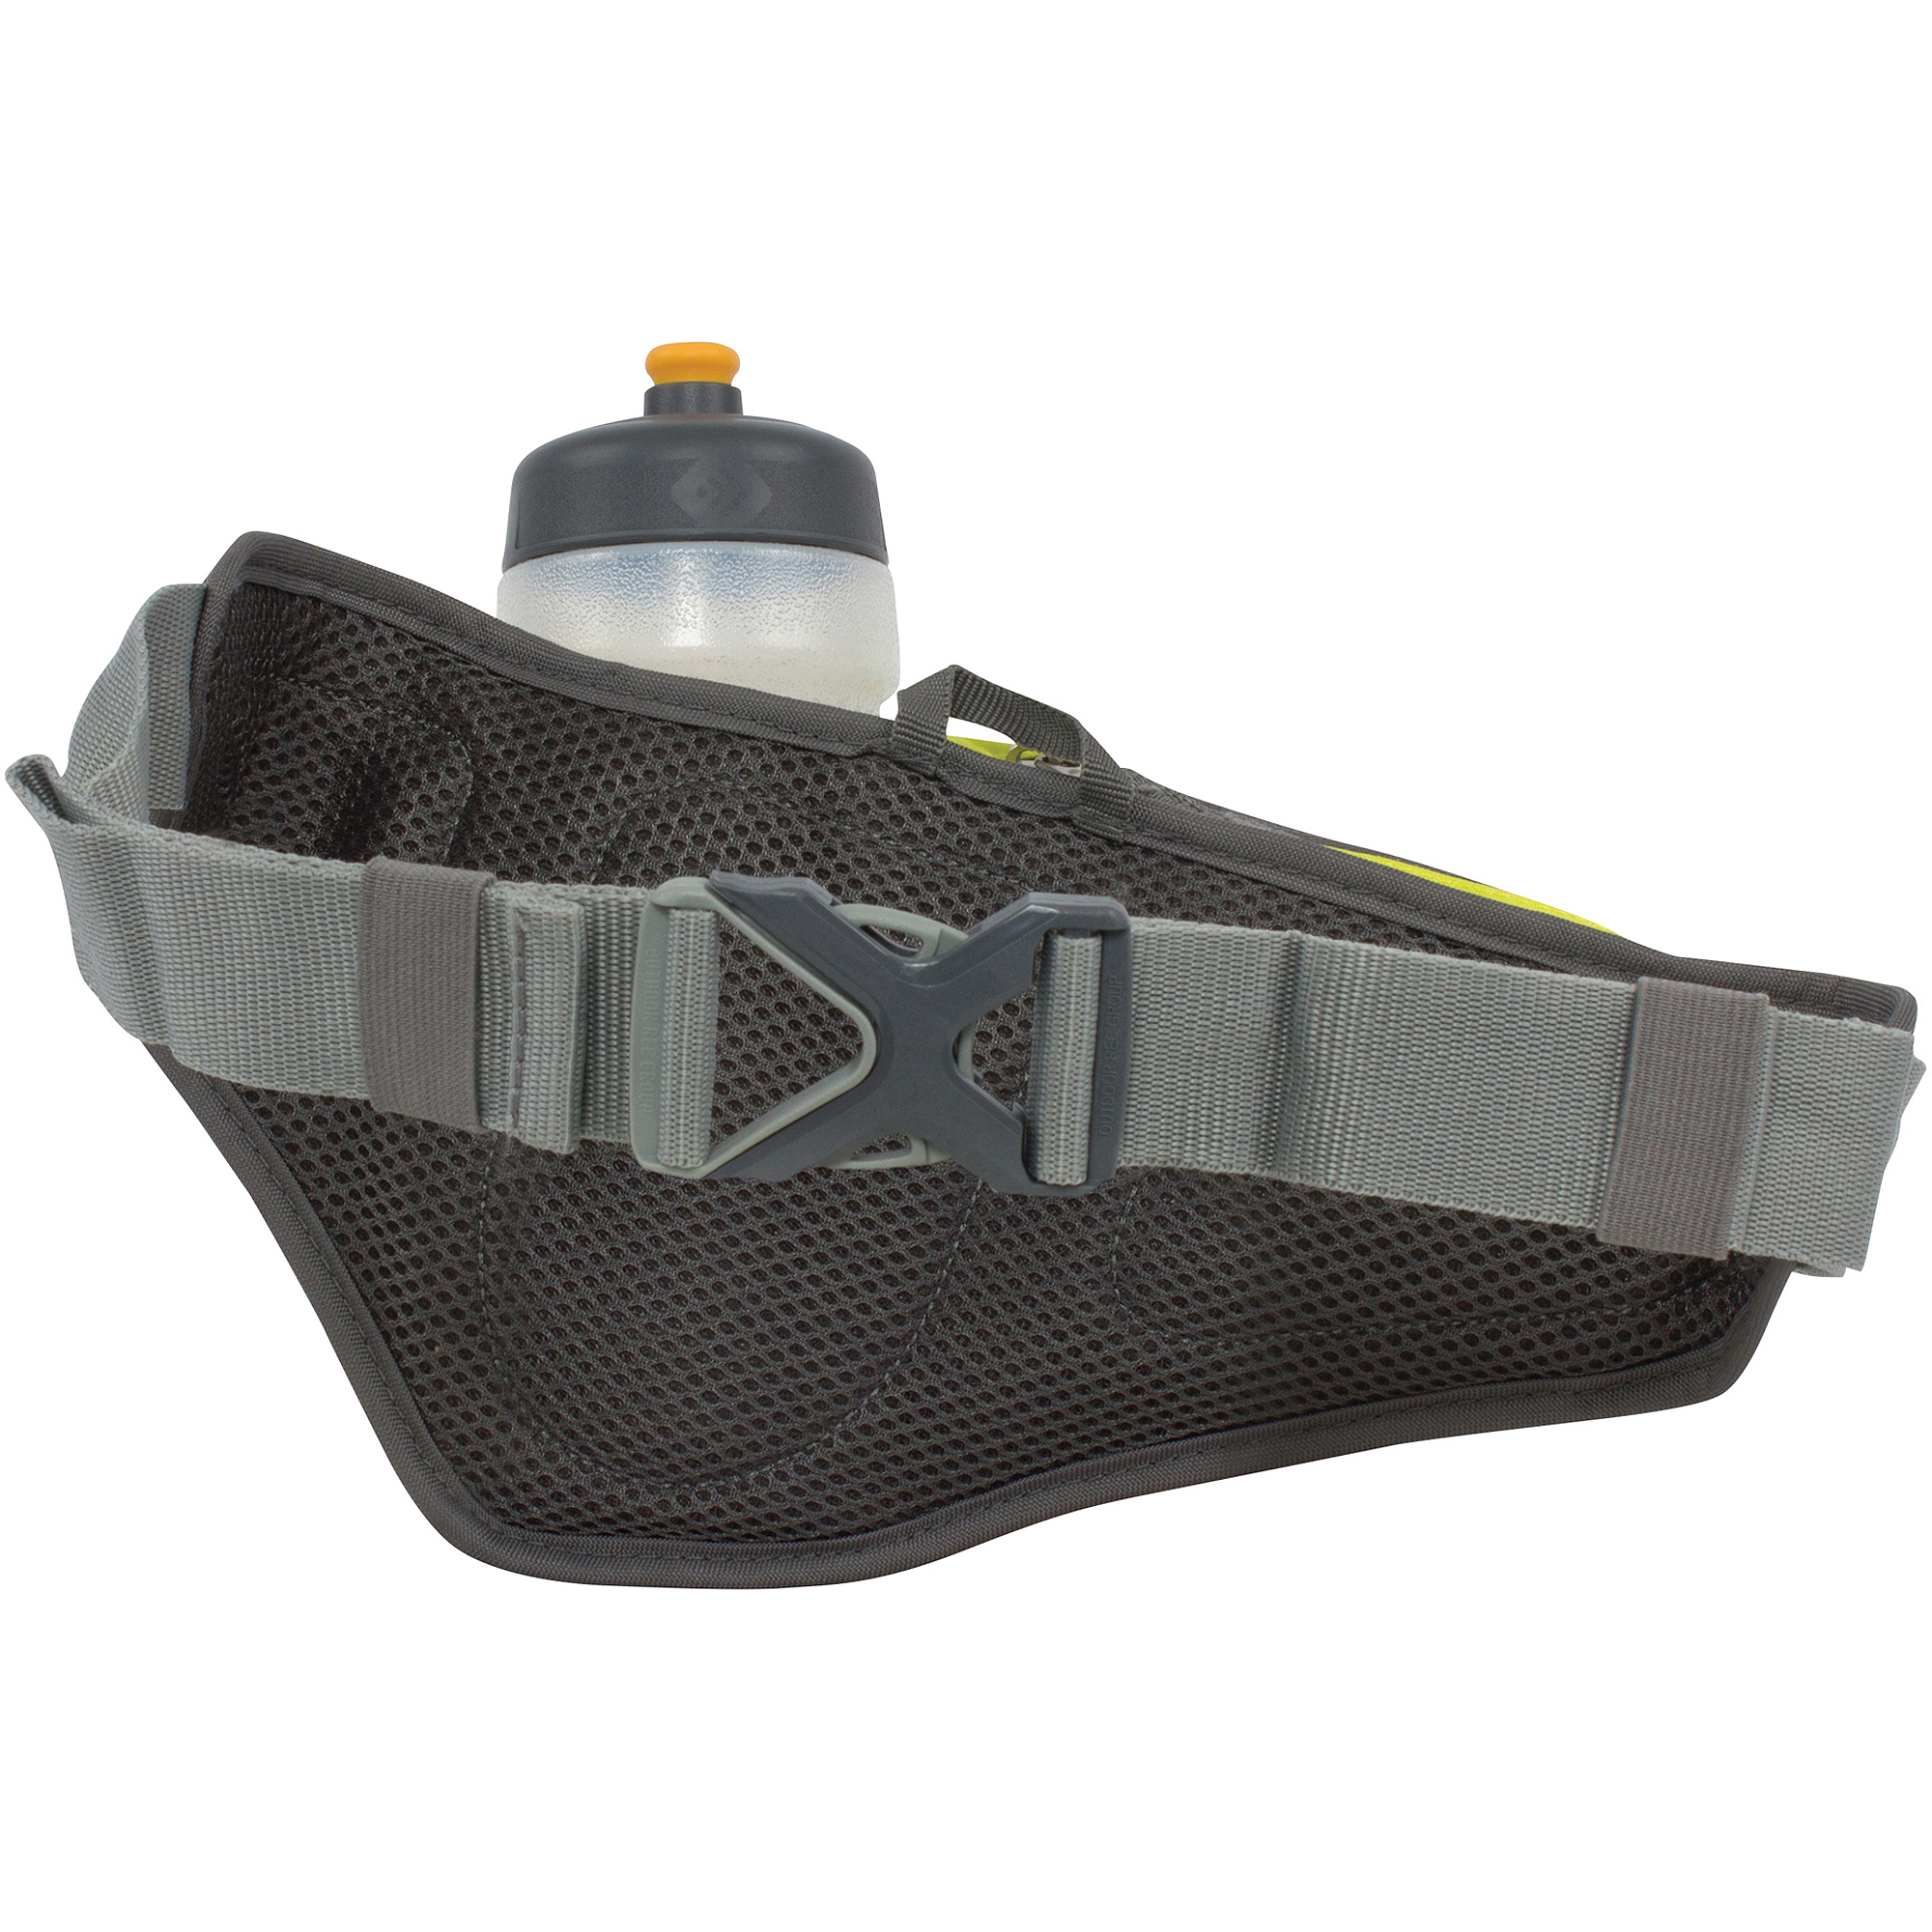 Outdoor Products Interval 8.0 Waist Pack, Green